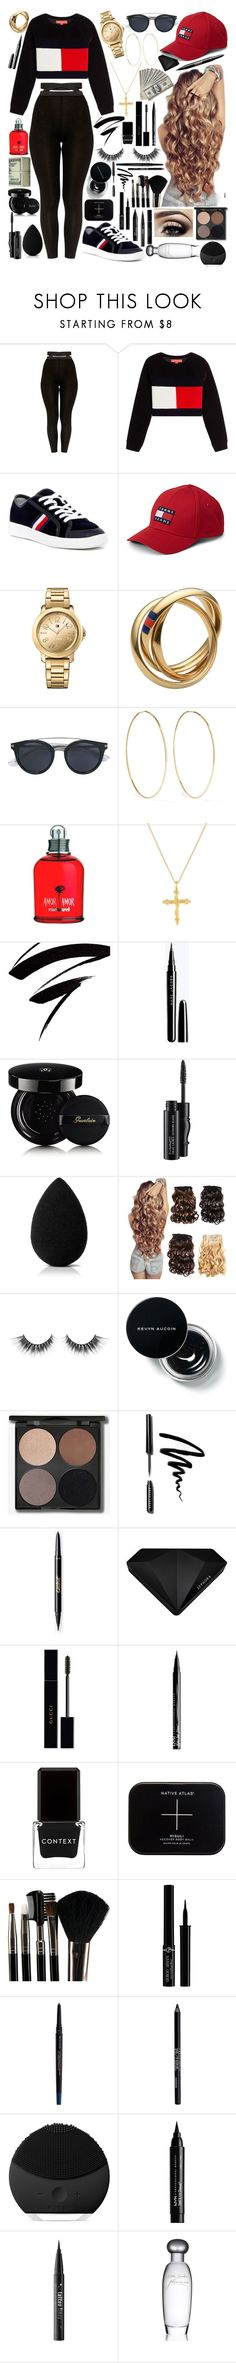 """""""Babe"""" by braybraycraycrayshanaenae ❤ liked on Polyvore featuring Hilfiger Collection, Tommy Hilfiger, Magda Butrym, Bling Jewelry, Guerlain, MAC Cosmetics, beautyblender, Bobbi Brown Cosmetics, Sephora Collection and Gucci"""